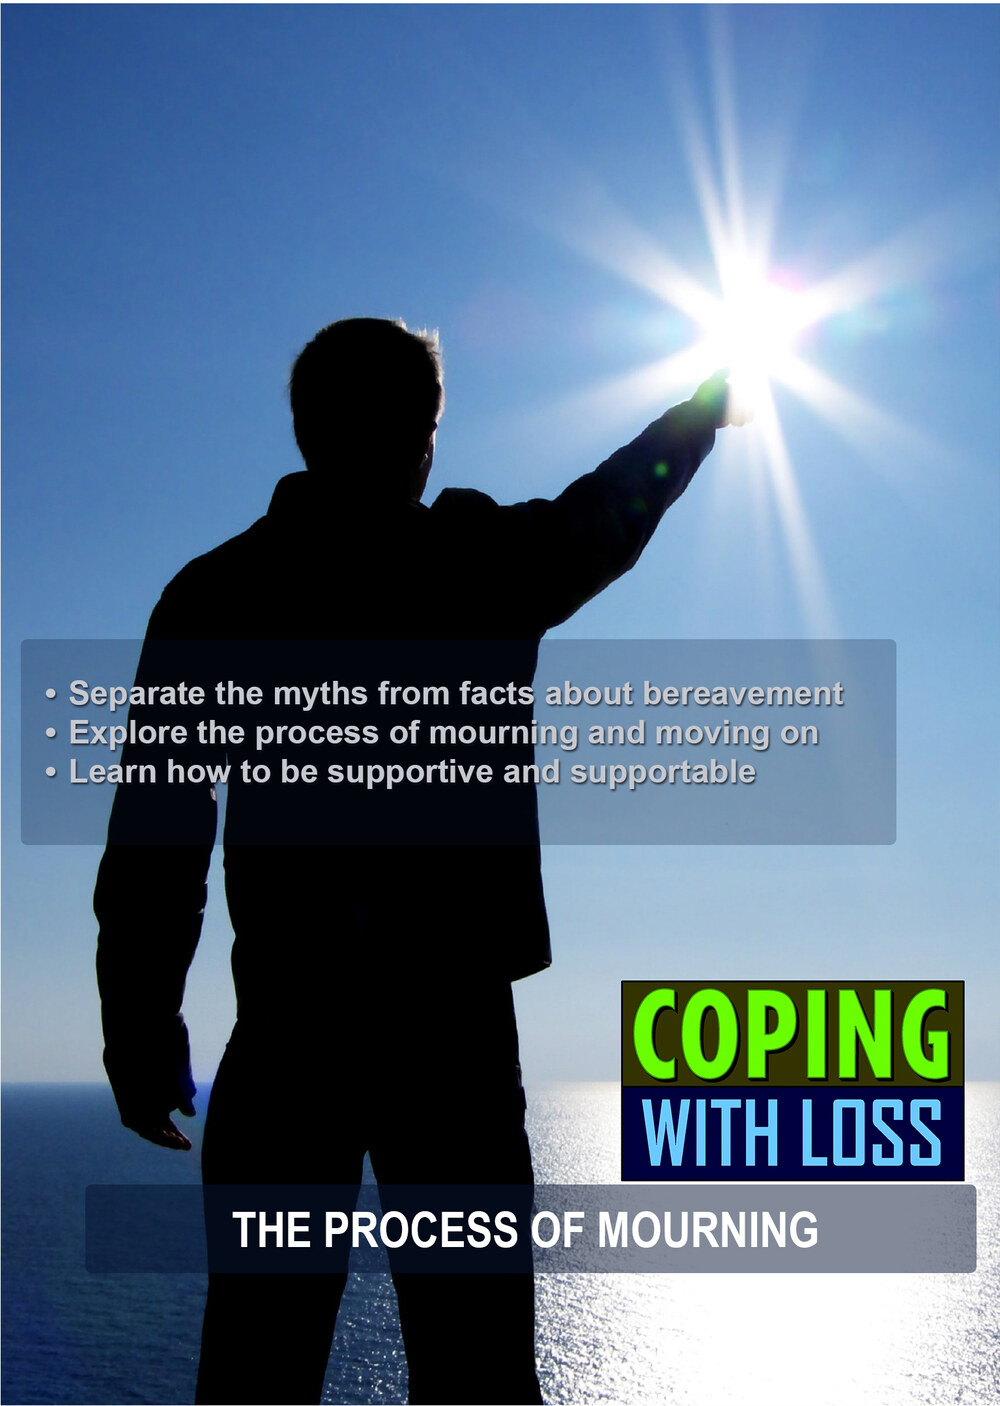 Coping with Loss - The Process of Mourning DVD